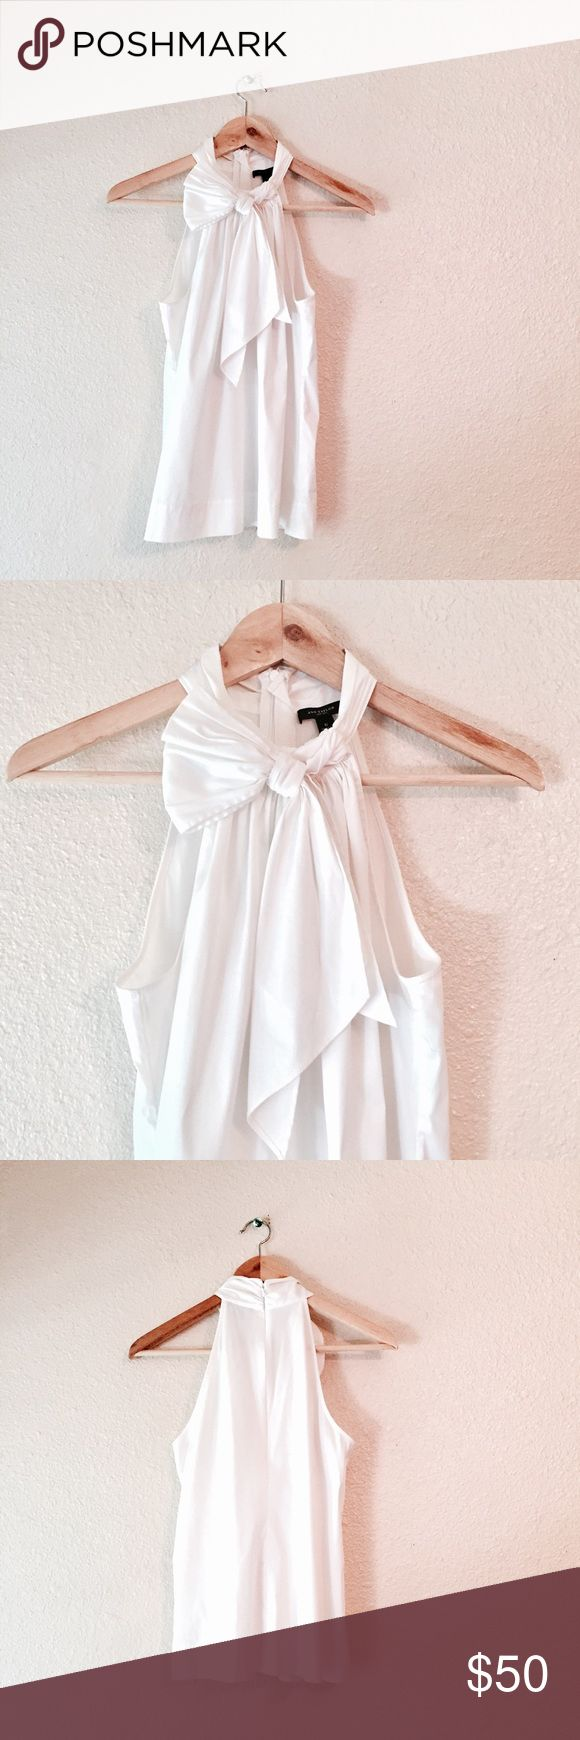 Ann Taylor white bow high neck tank top blouse 6 Beautiful Ann Taylor Sleeveless Blouse. Bright white high neck tank top. Lovely bow on the front. Excellent used condition. Very well made & extremely flattering! Size 6. Ann Taylor Tops Tank Tops